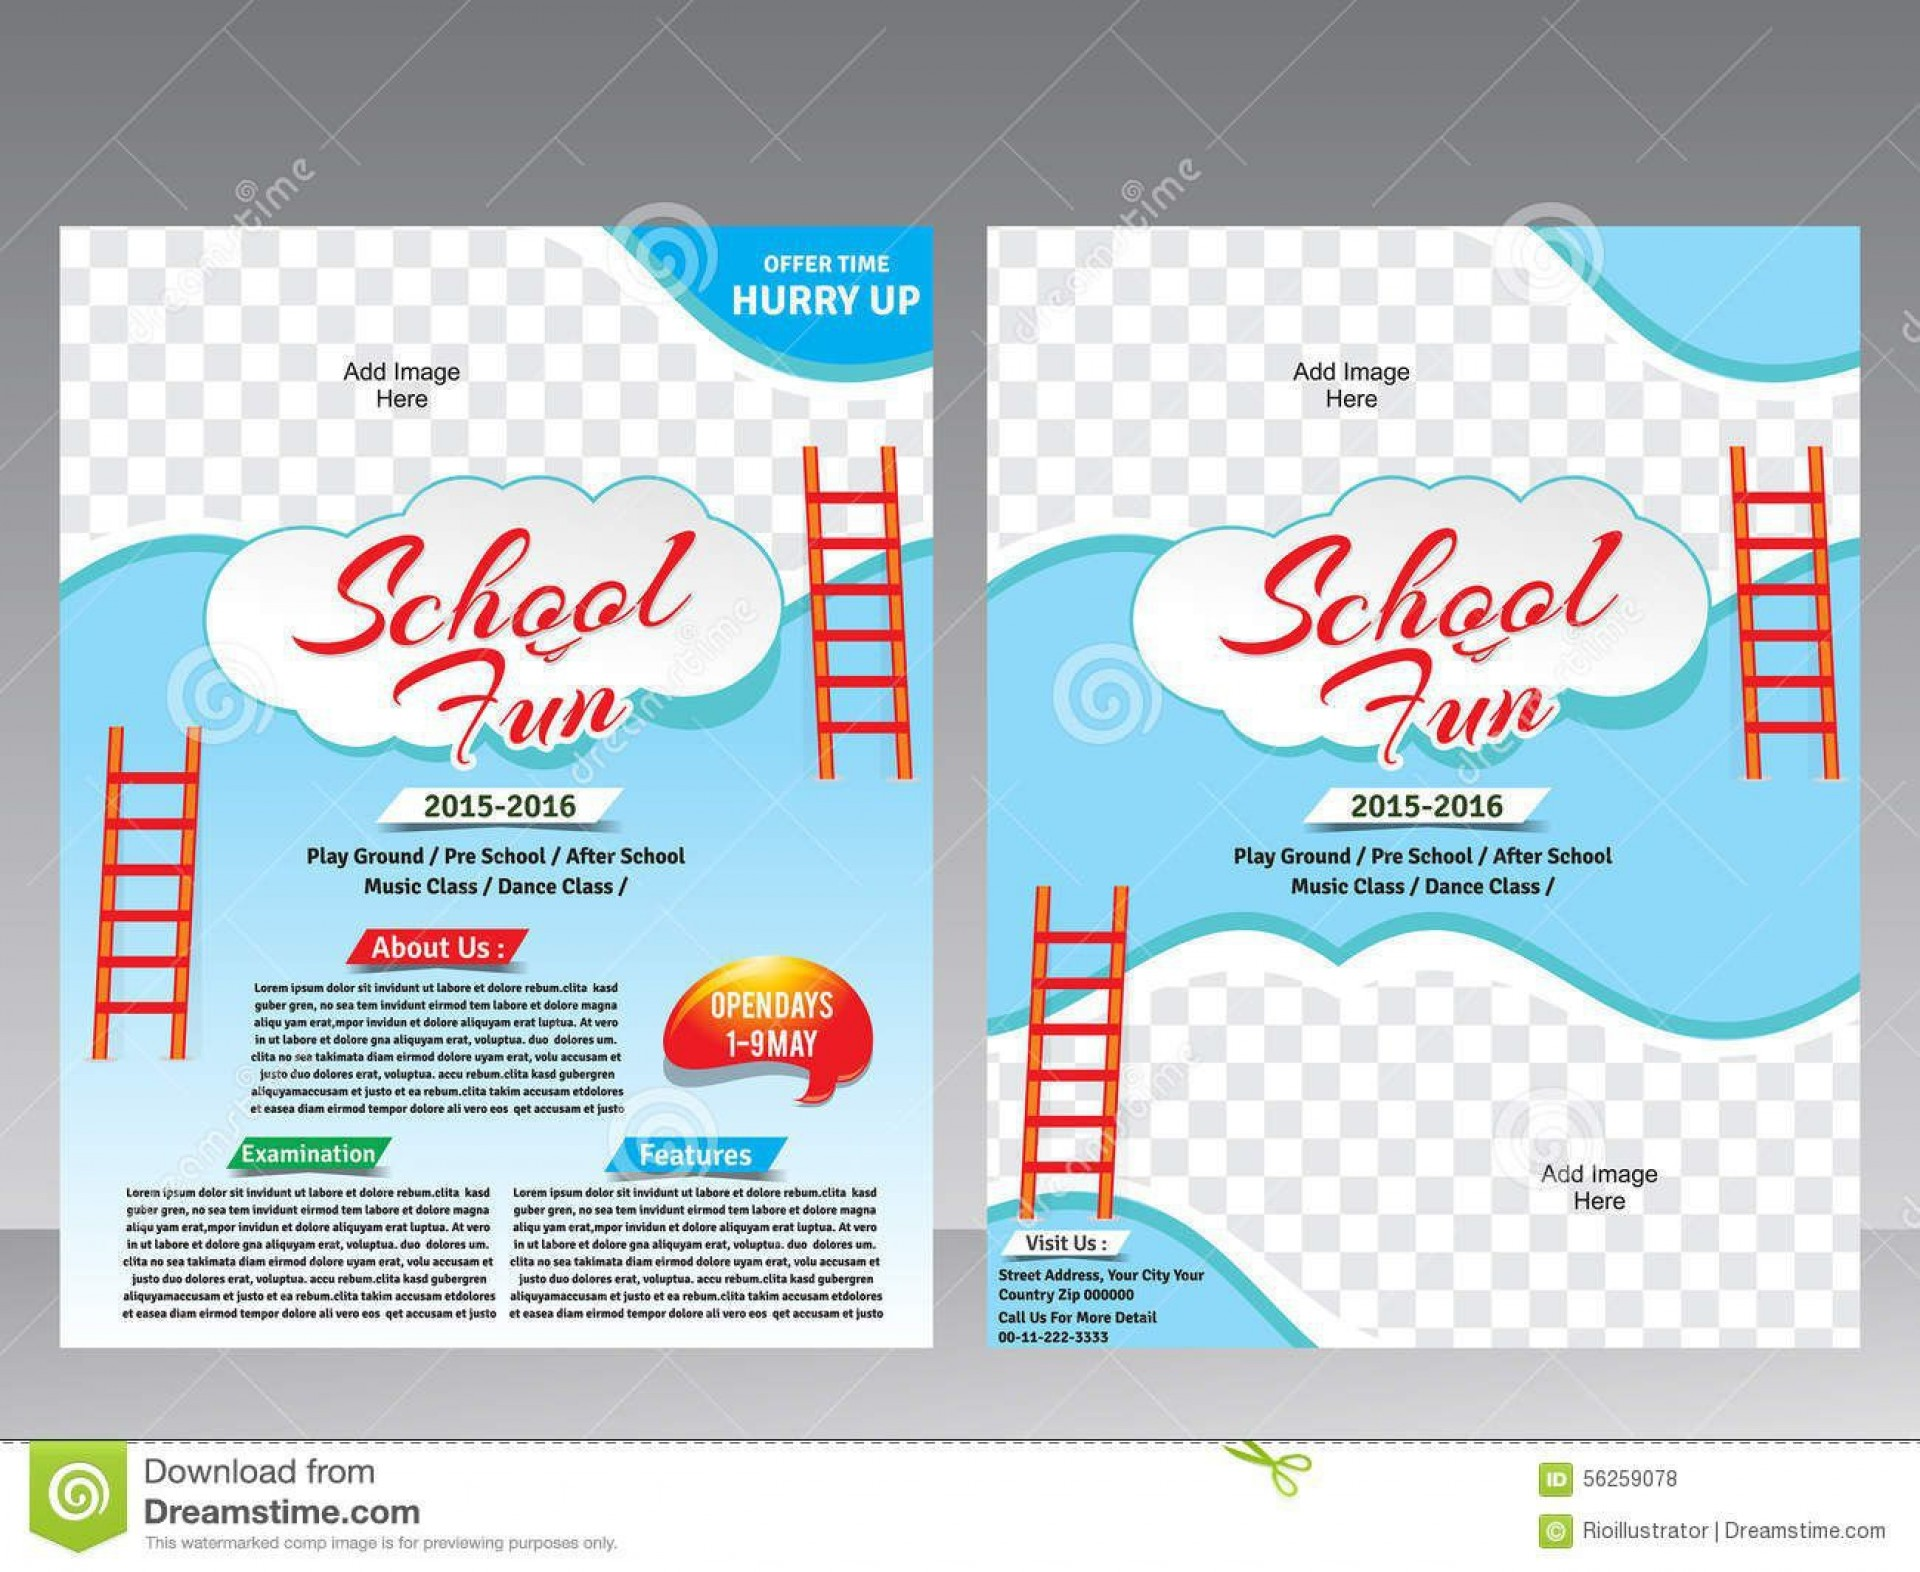 009 Beautiful School Magazine Layout Template Free Download Highest Clarity 1920